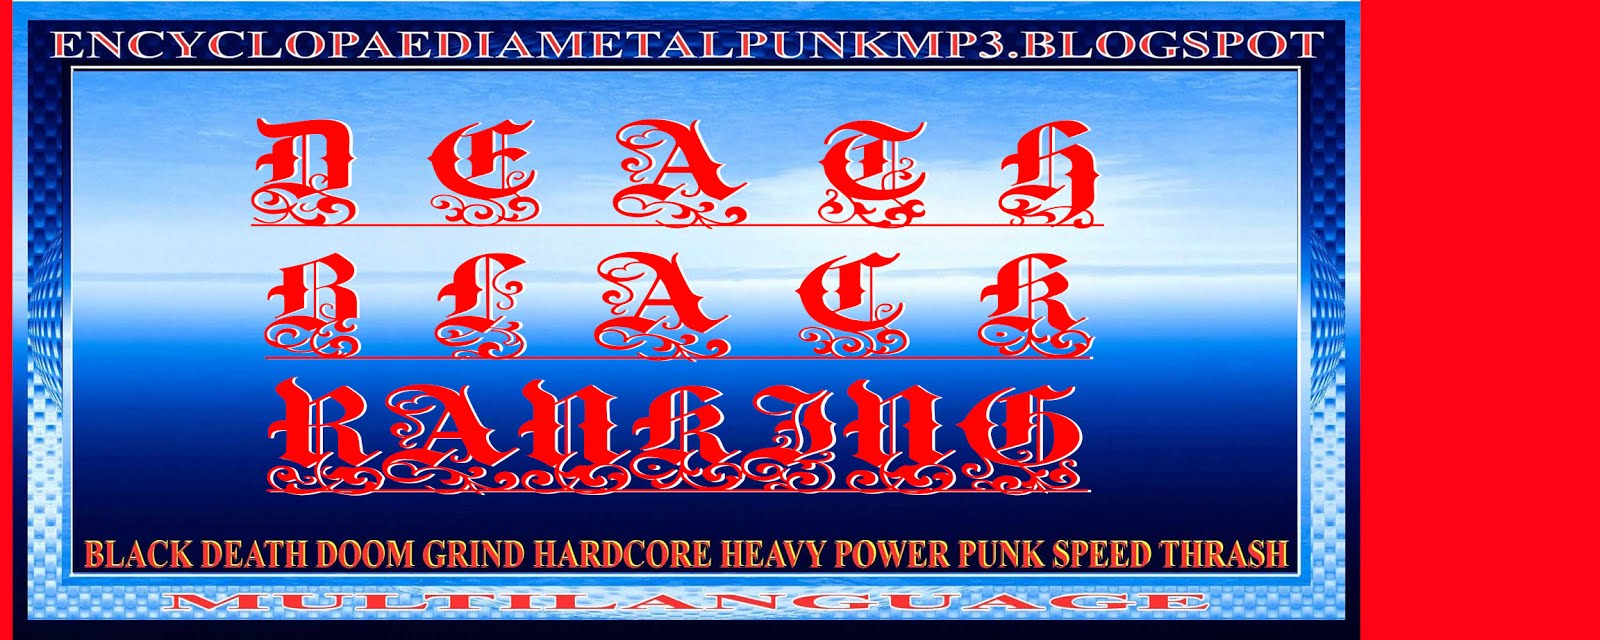 ENCYCLOPAEDIA DEATH BLACK RANKING MP3 BLOGSPOT